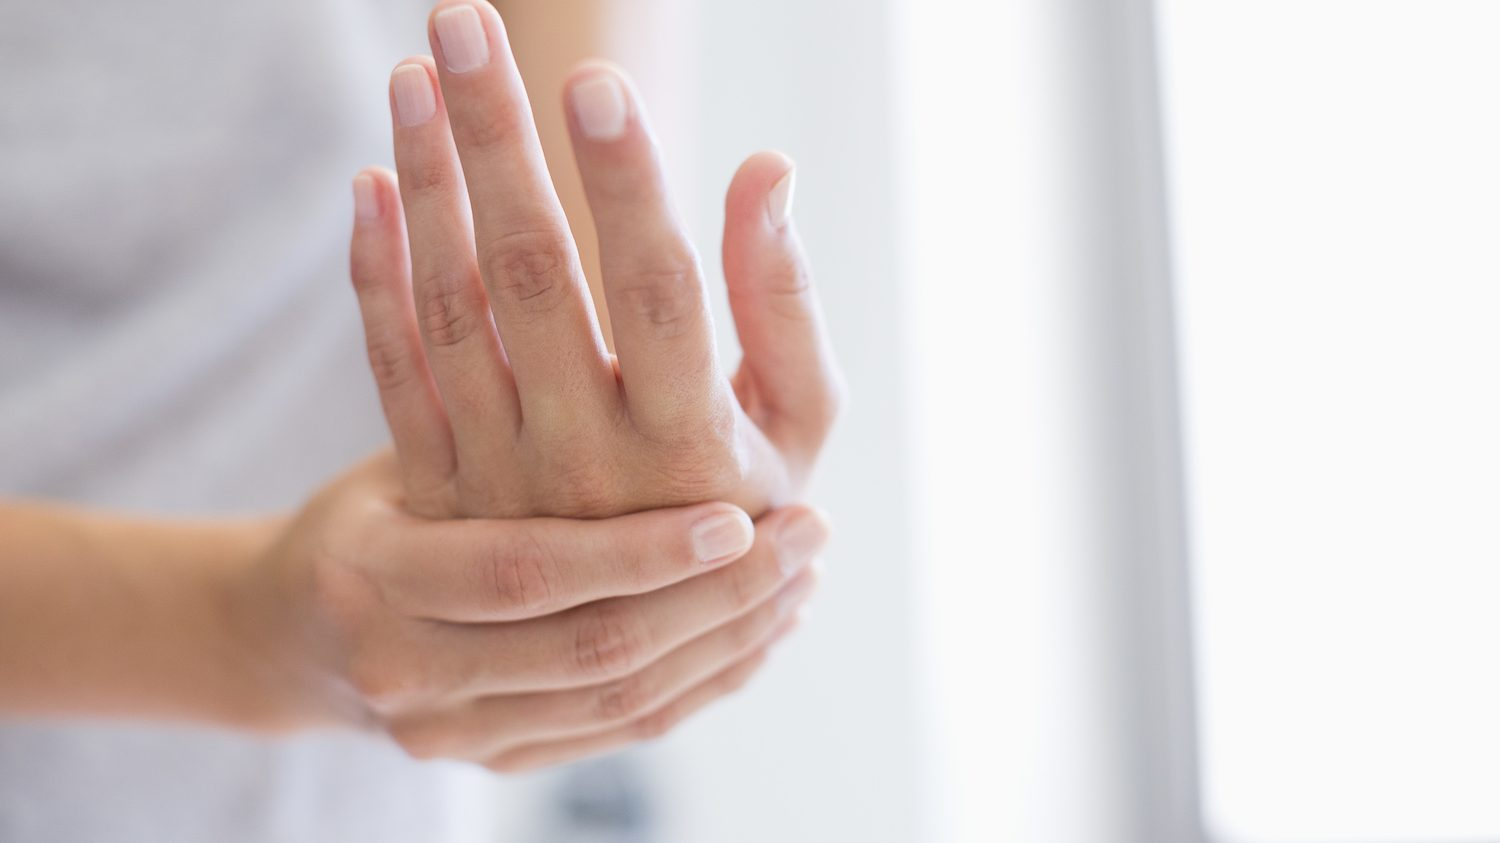 These 3 Tips Will Give You Fast Relief From Dry Cracked Hands